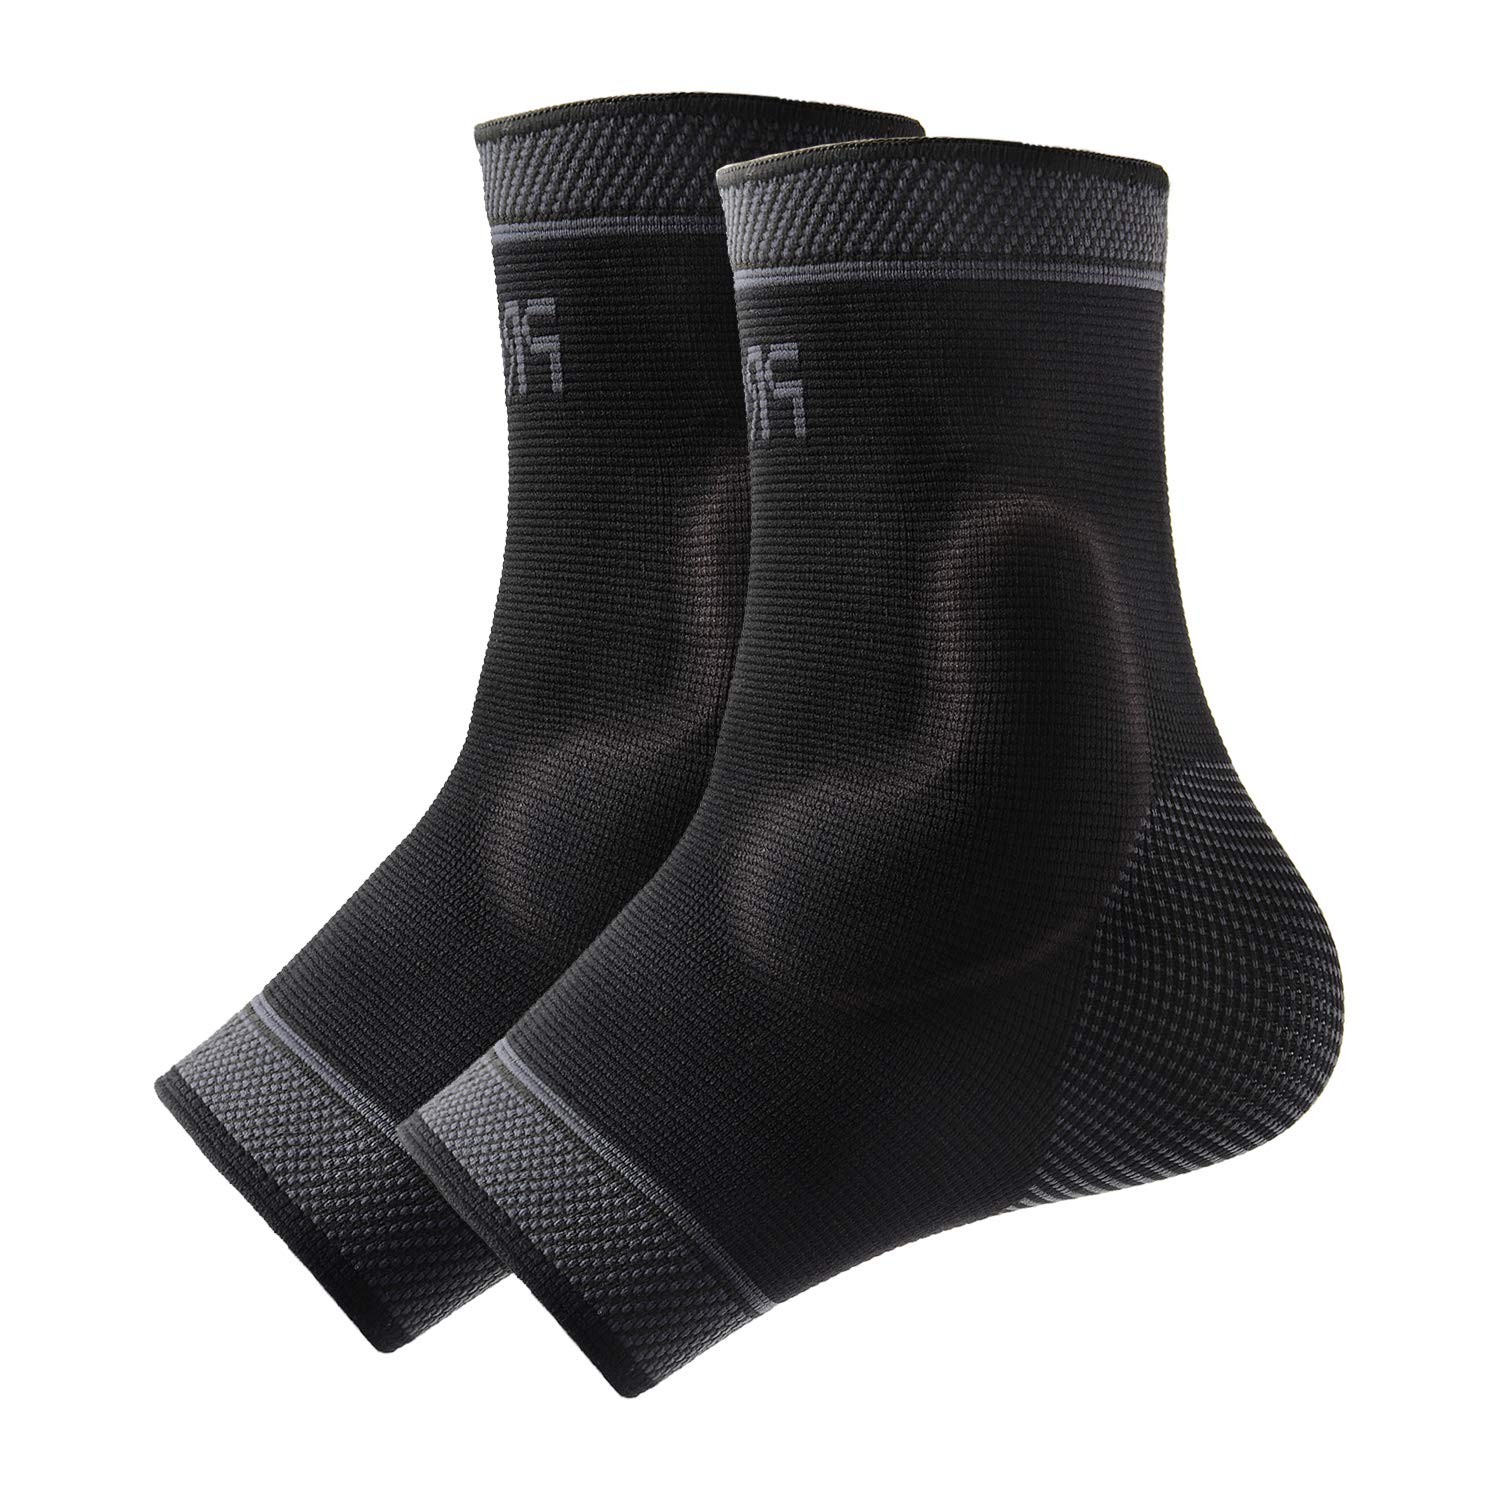 Protle Compression Support Sleeve Silicone